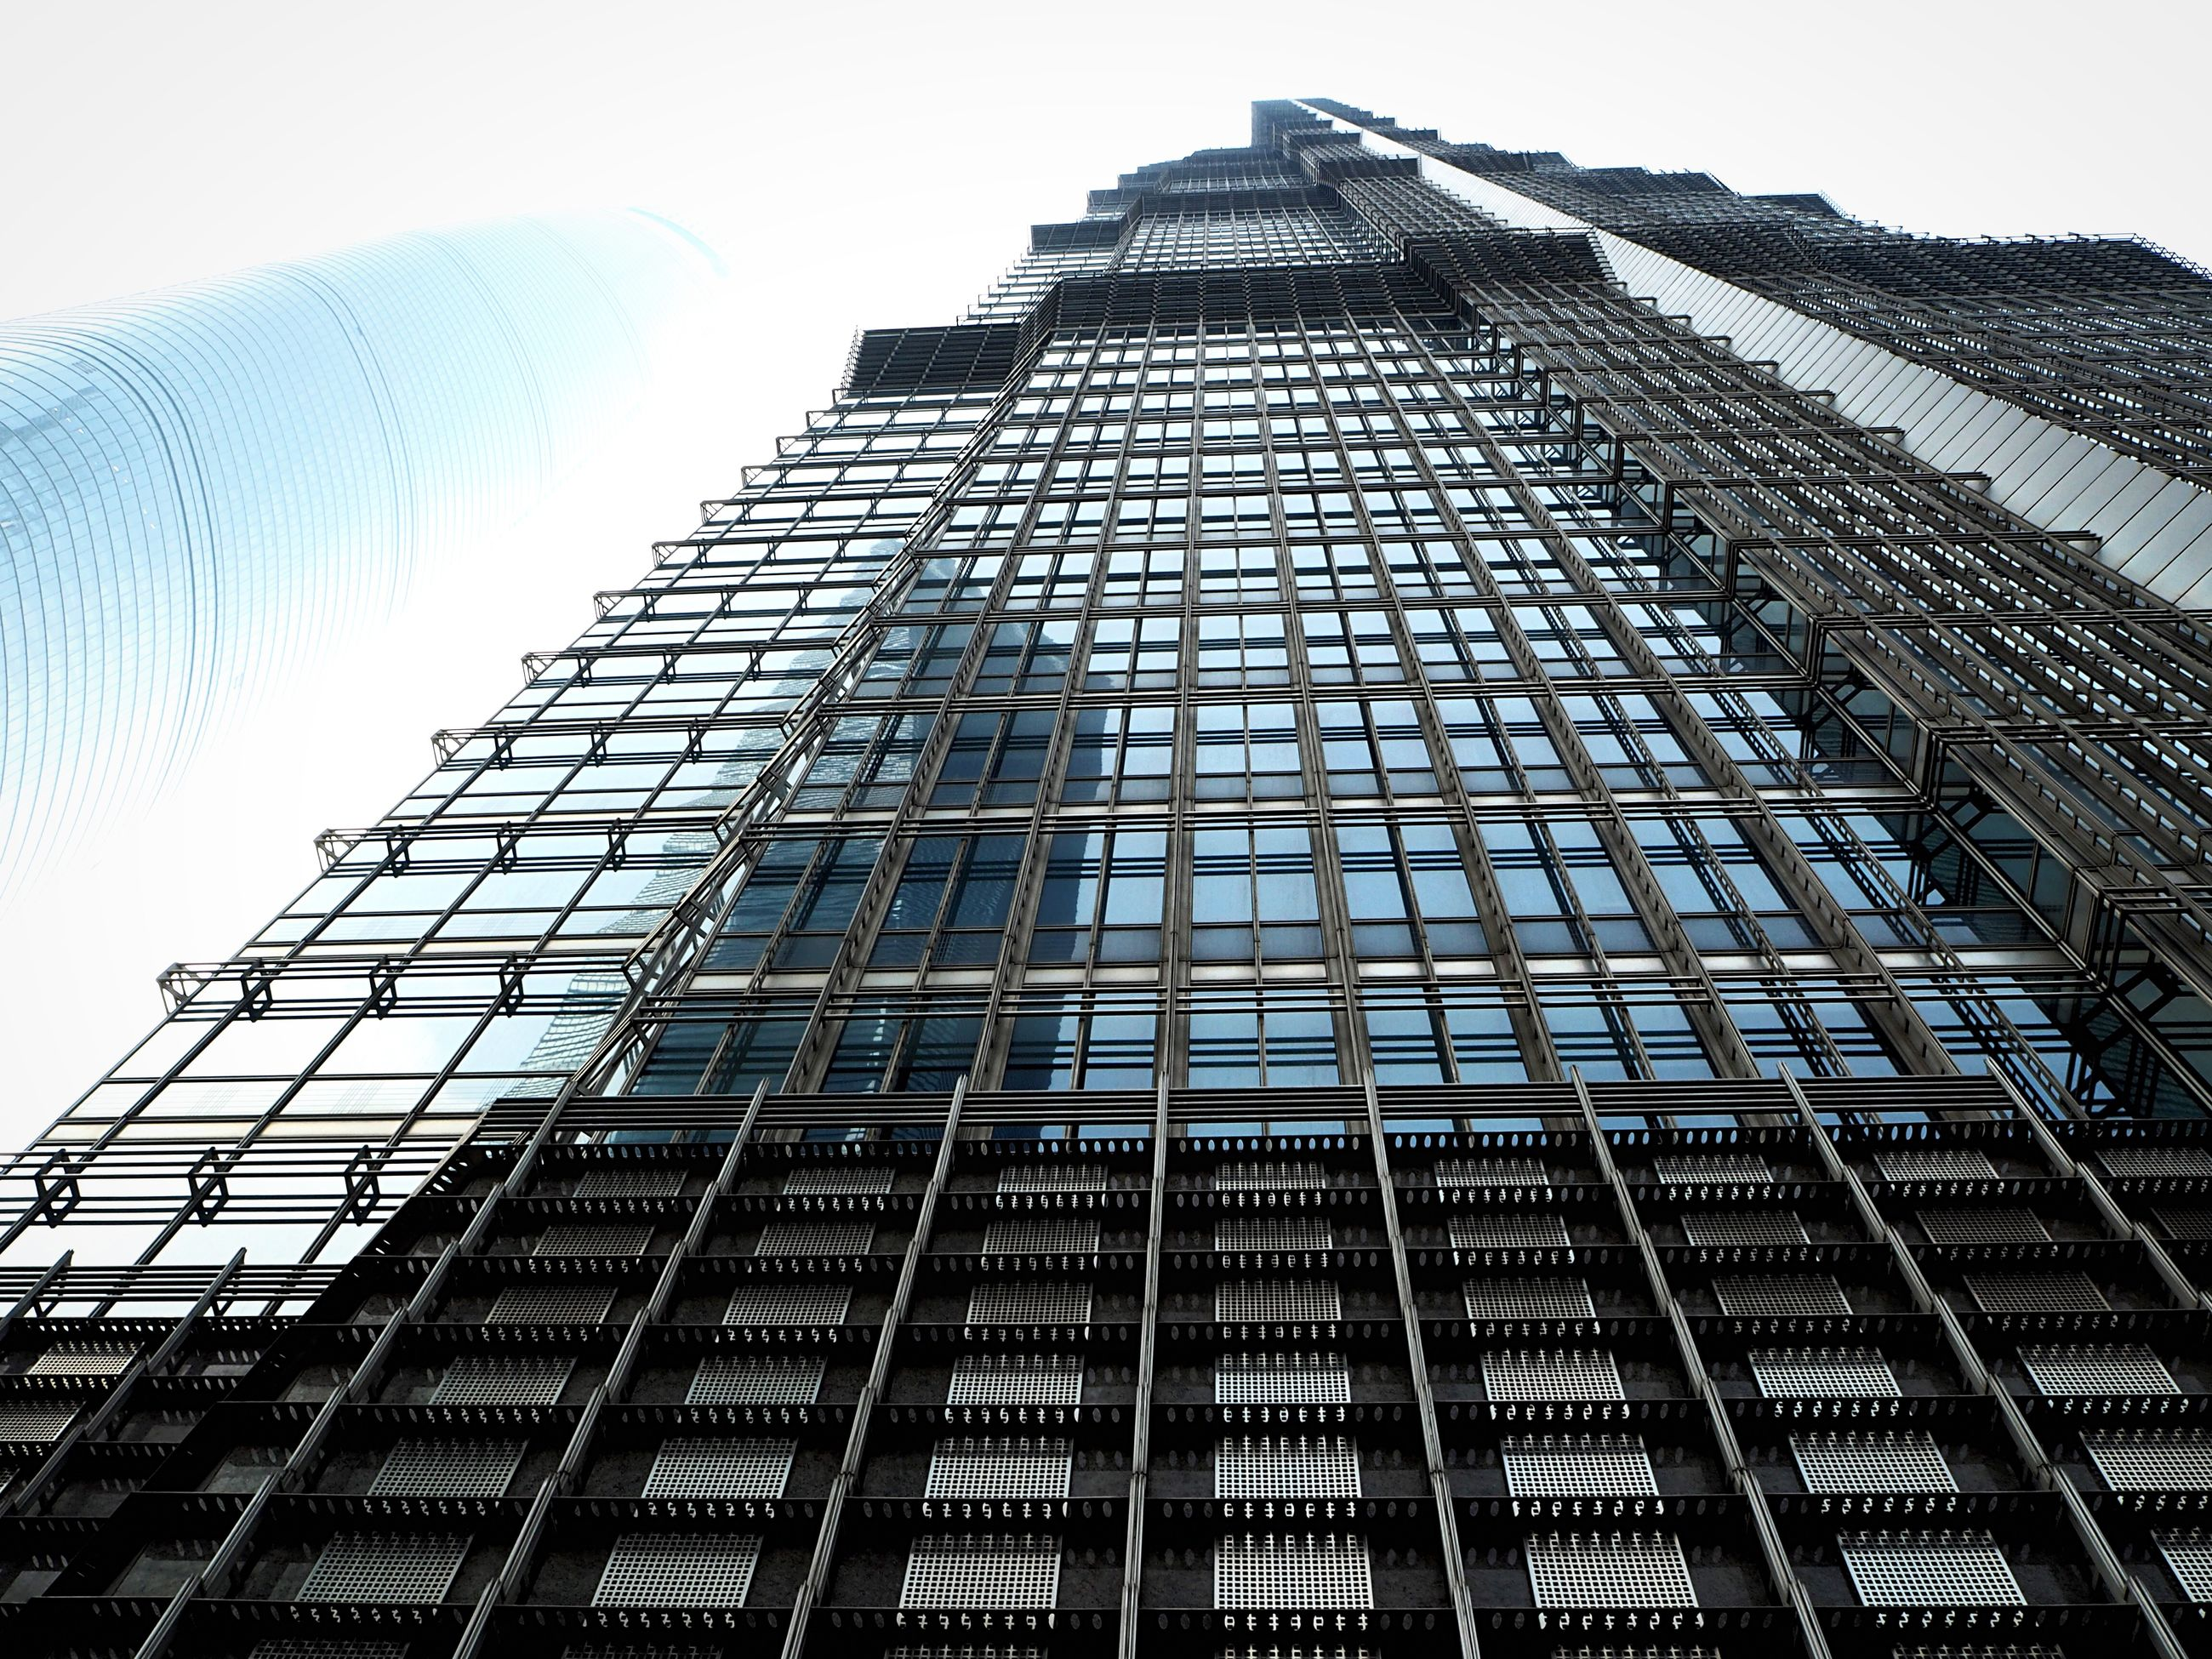 architecture, building exterior, built structure, low angle view, tall - high, modern, skyscraper, tower, office building, city, building, clear sky, sky, day, window, glass - material, tall, no people, outdoors, architectural feature